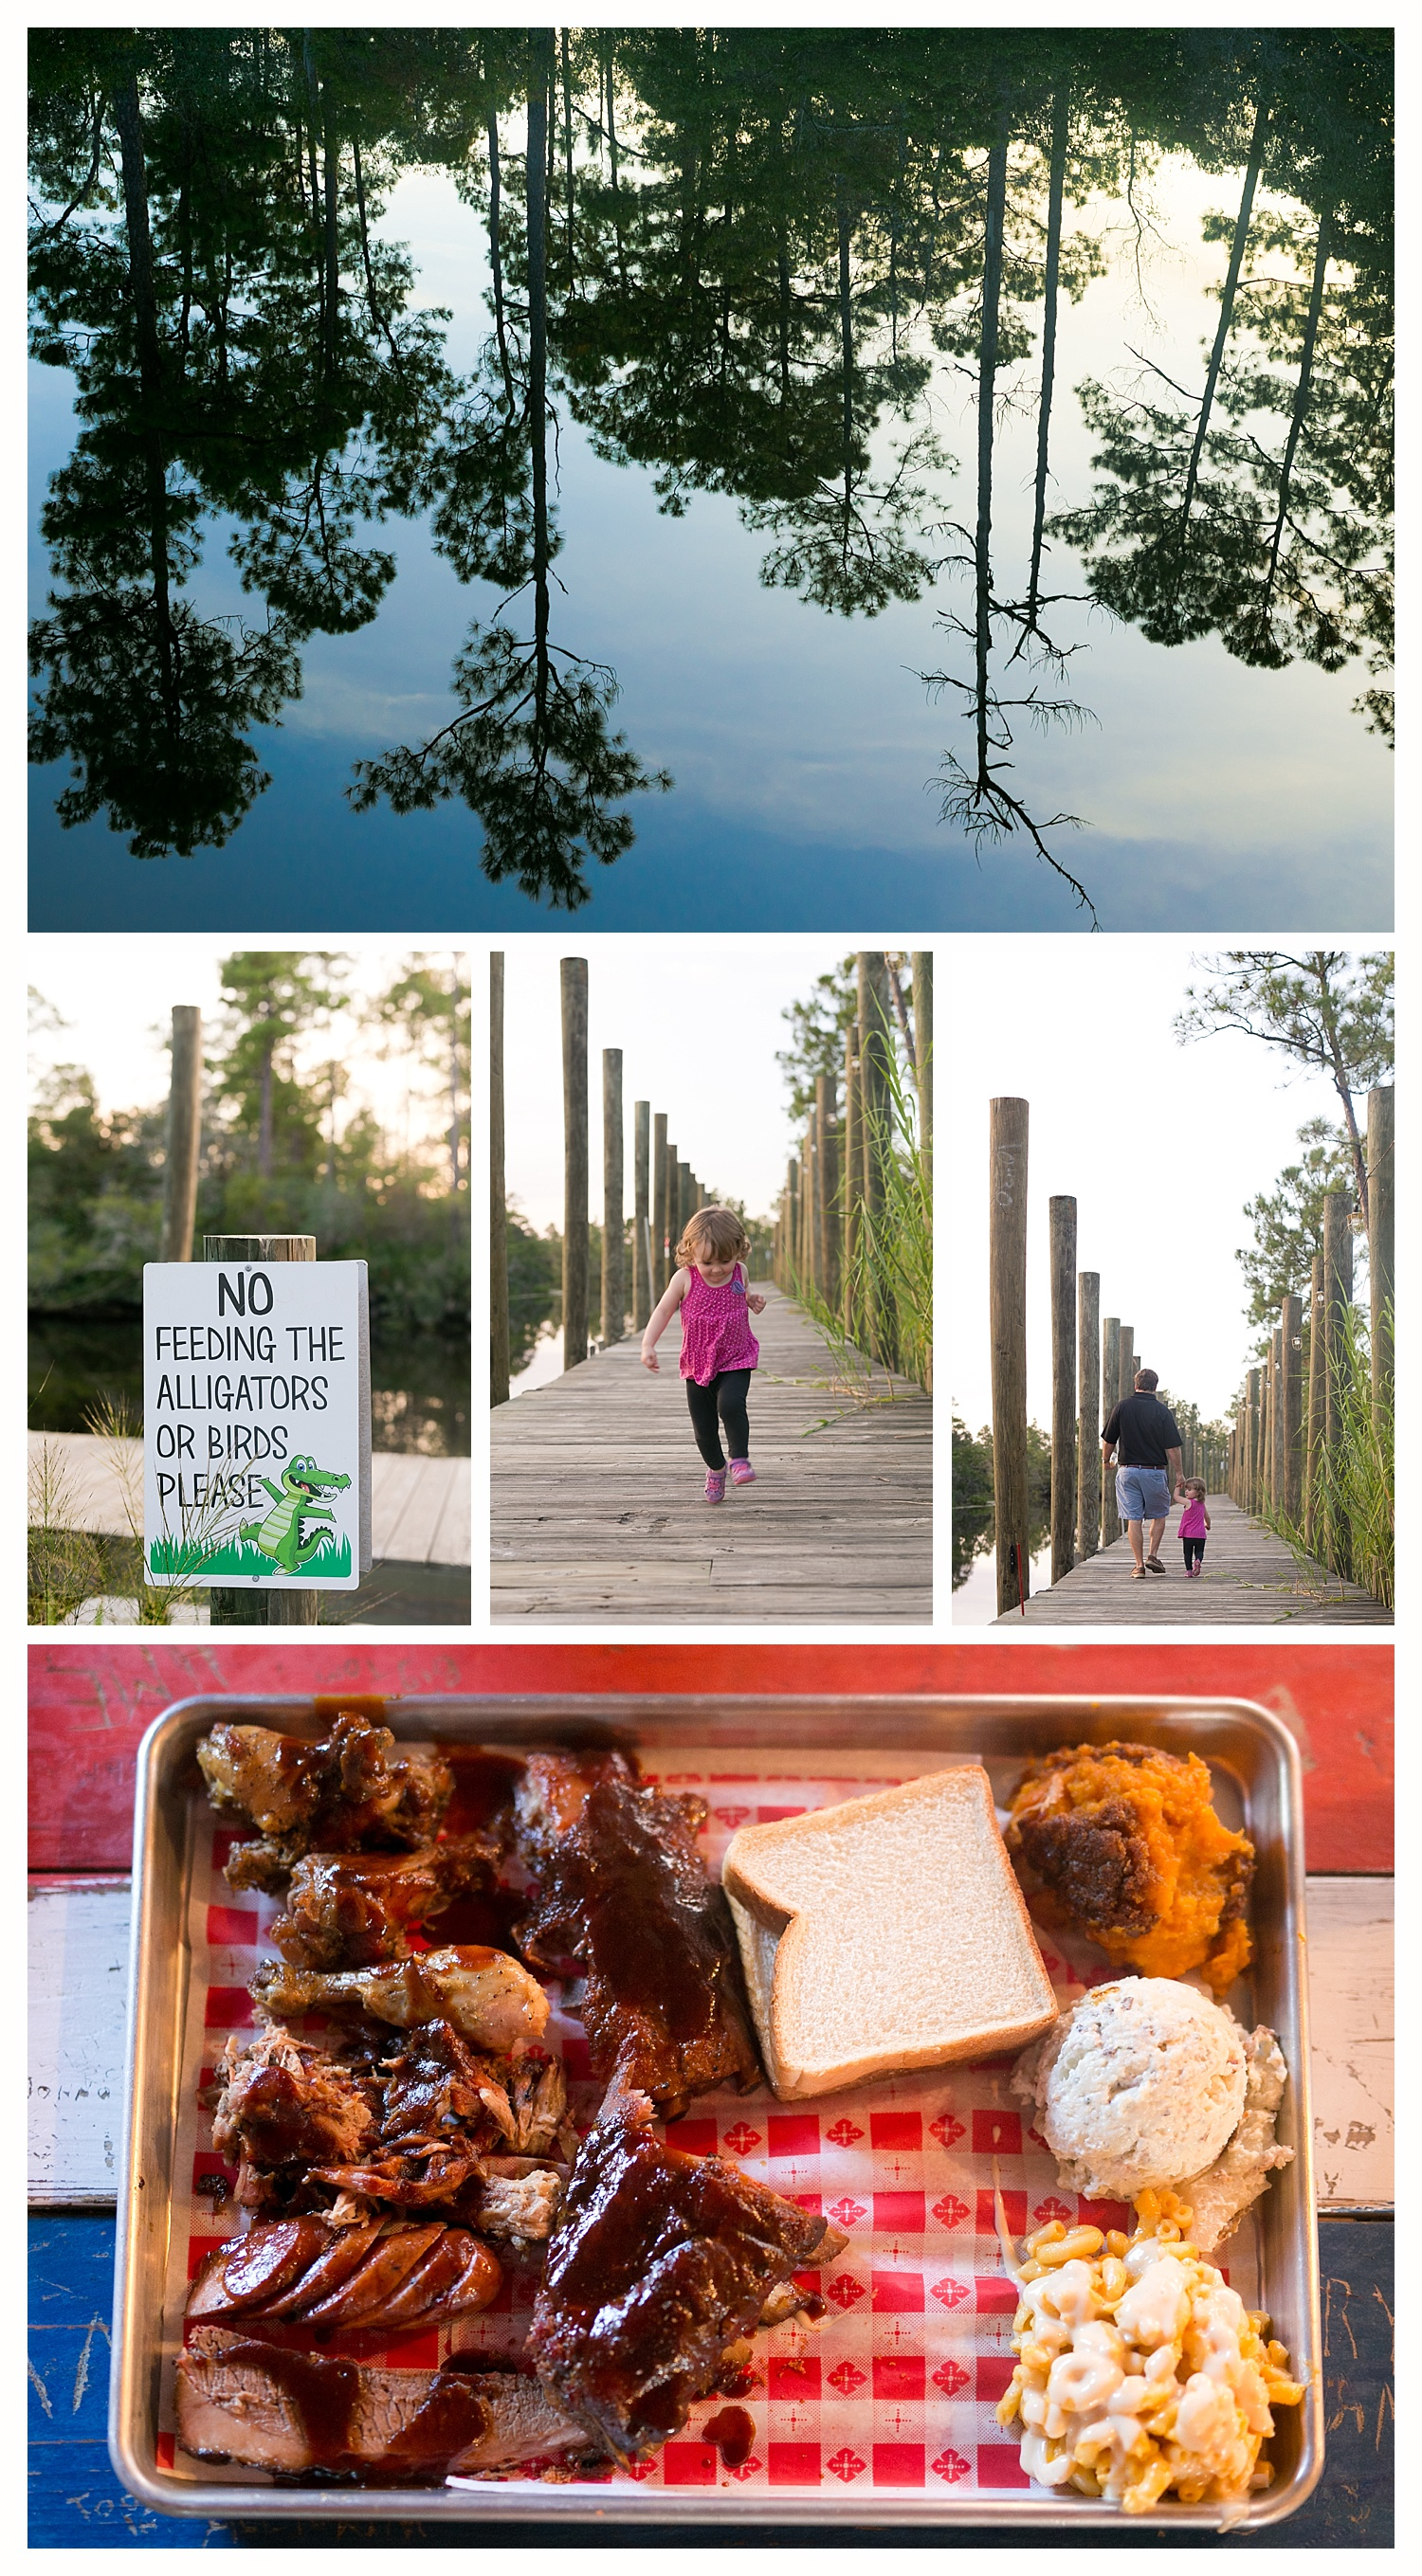 The Shed sampler platter and outdoor scenery with bayou and pier